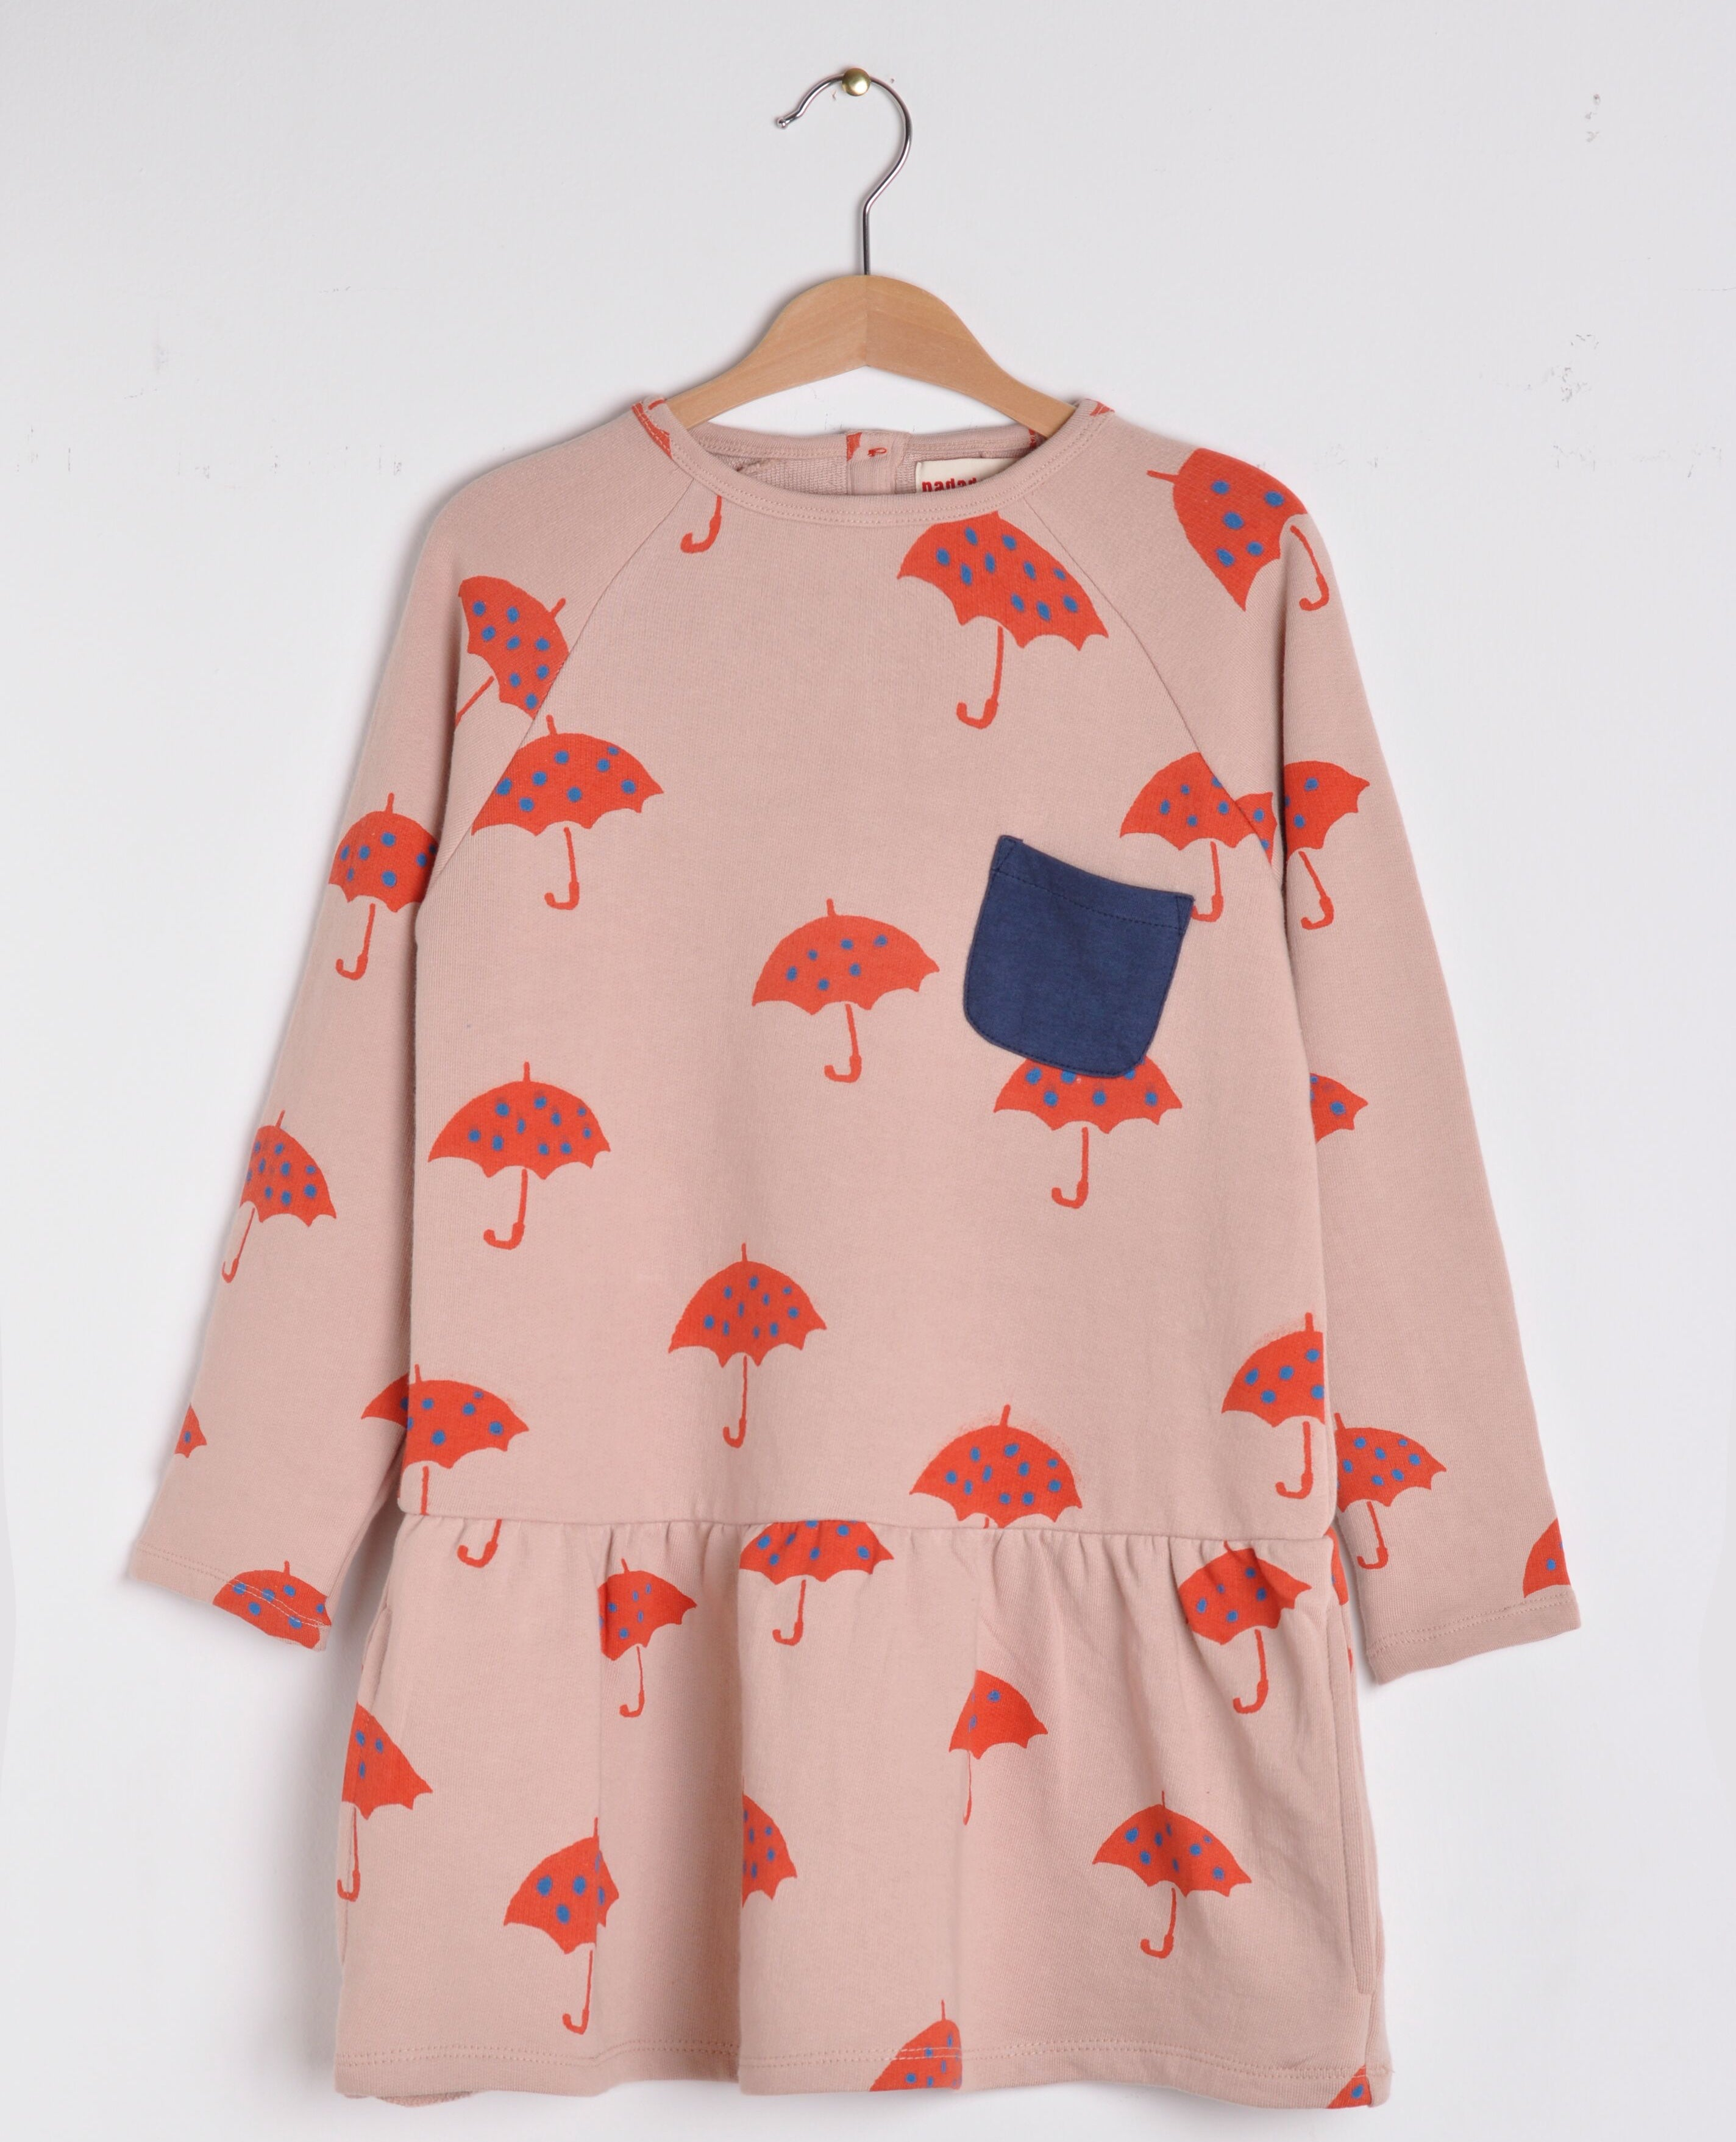 Nadadelazos Organic Umbrella Dress